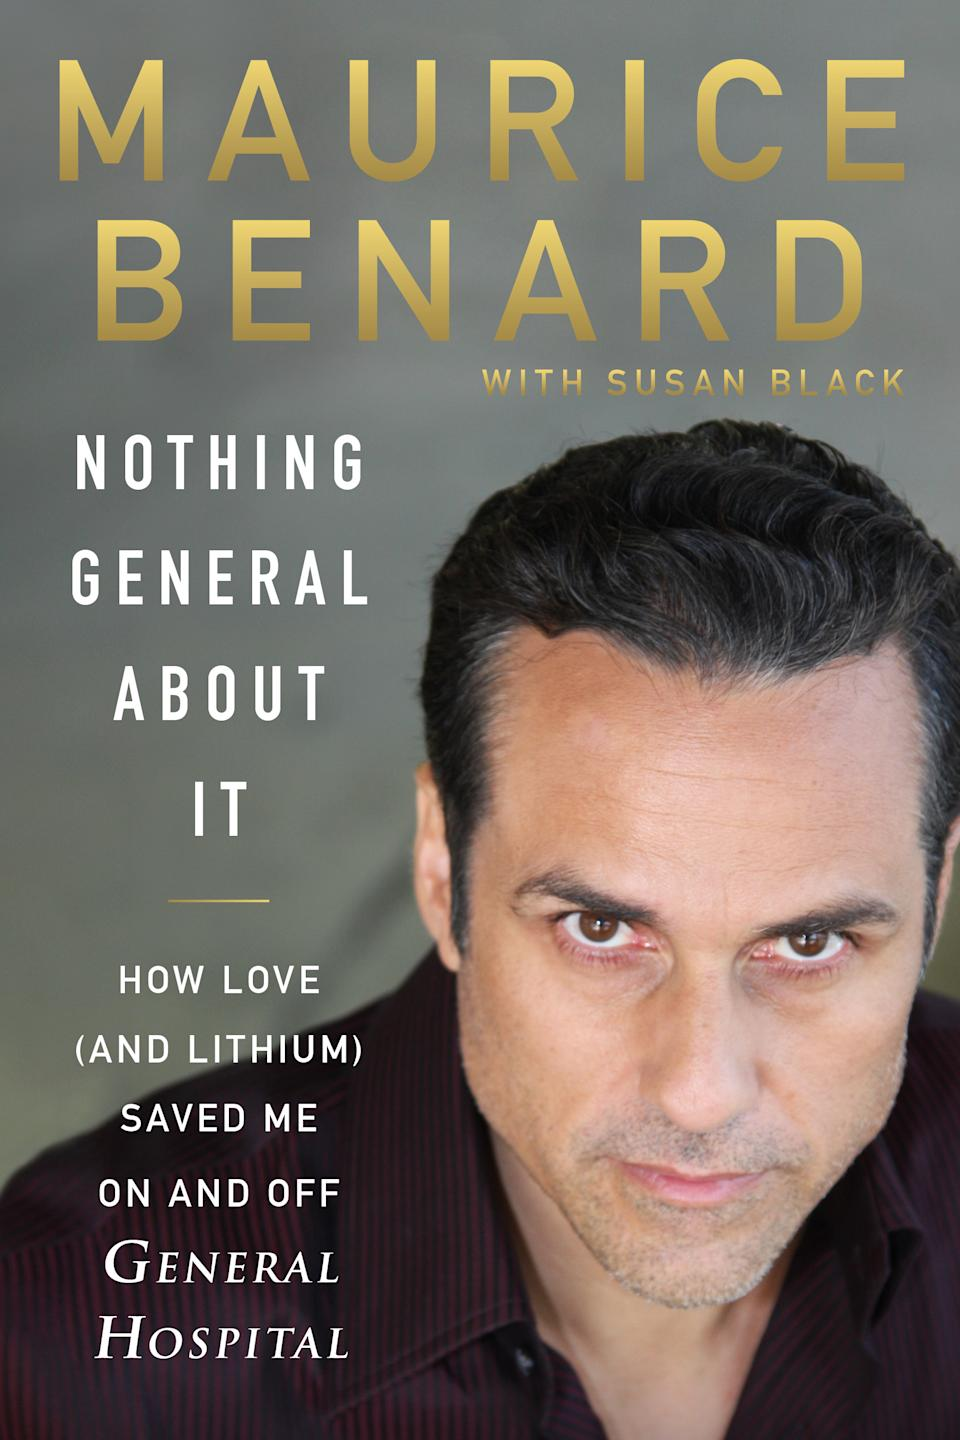 Maurice Benard's new memoir, Nothing General About It, is out now. (Image: HarperCollins)